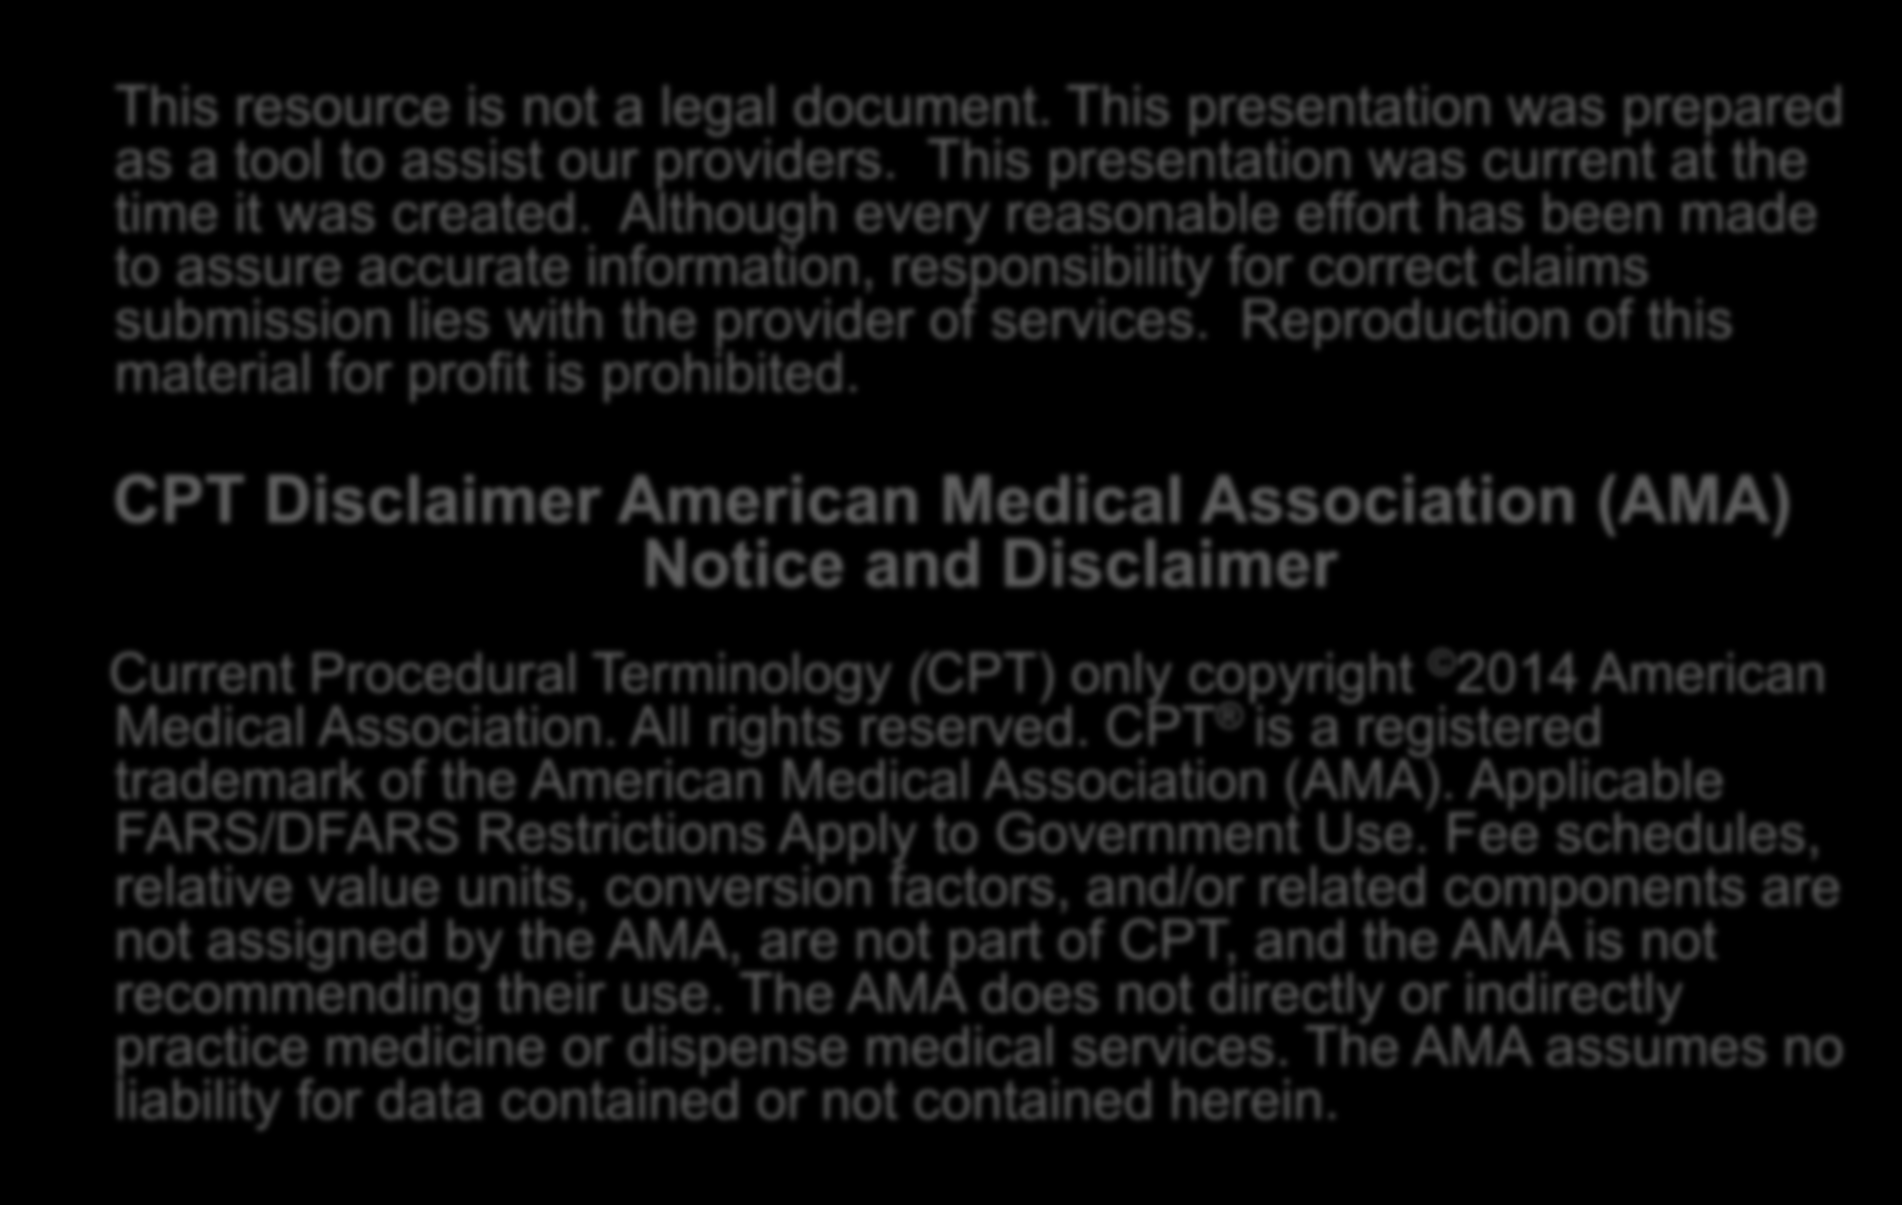 DISCLAIMER This resource is not a legal document. This presentation was prepared as a tool to assist our providers. This presentation was current at the time it was created.